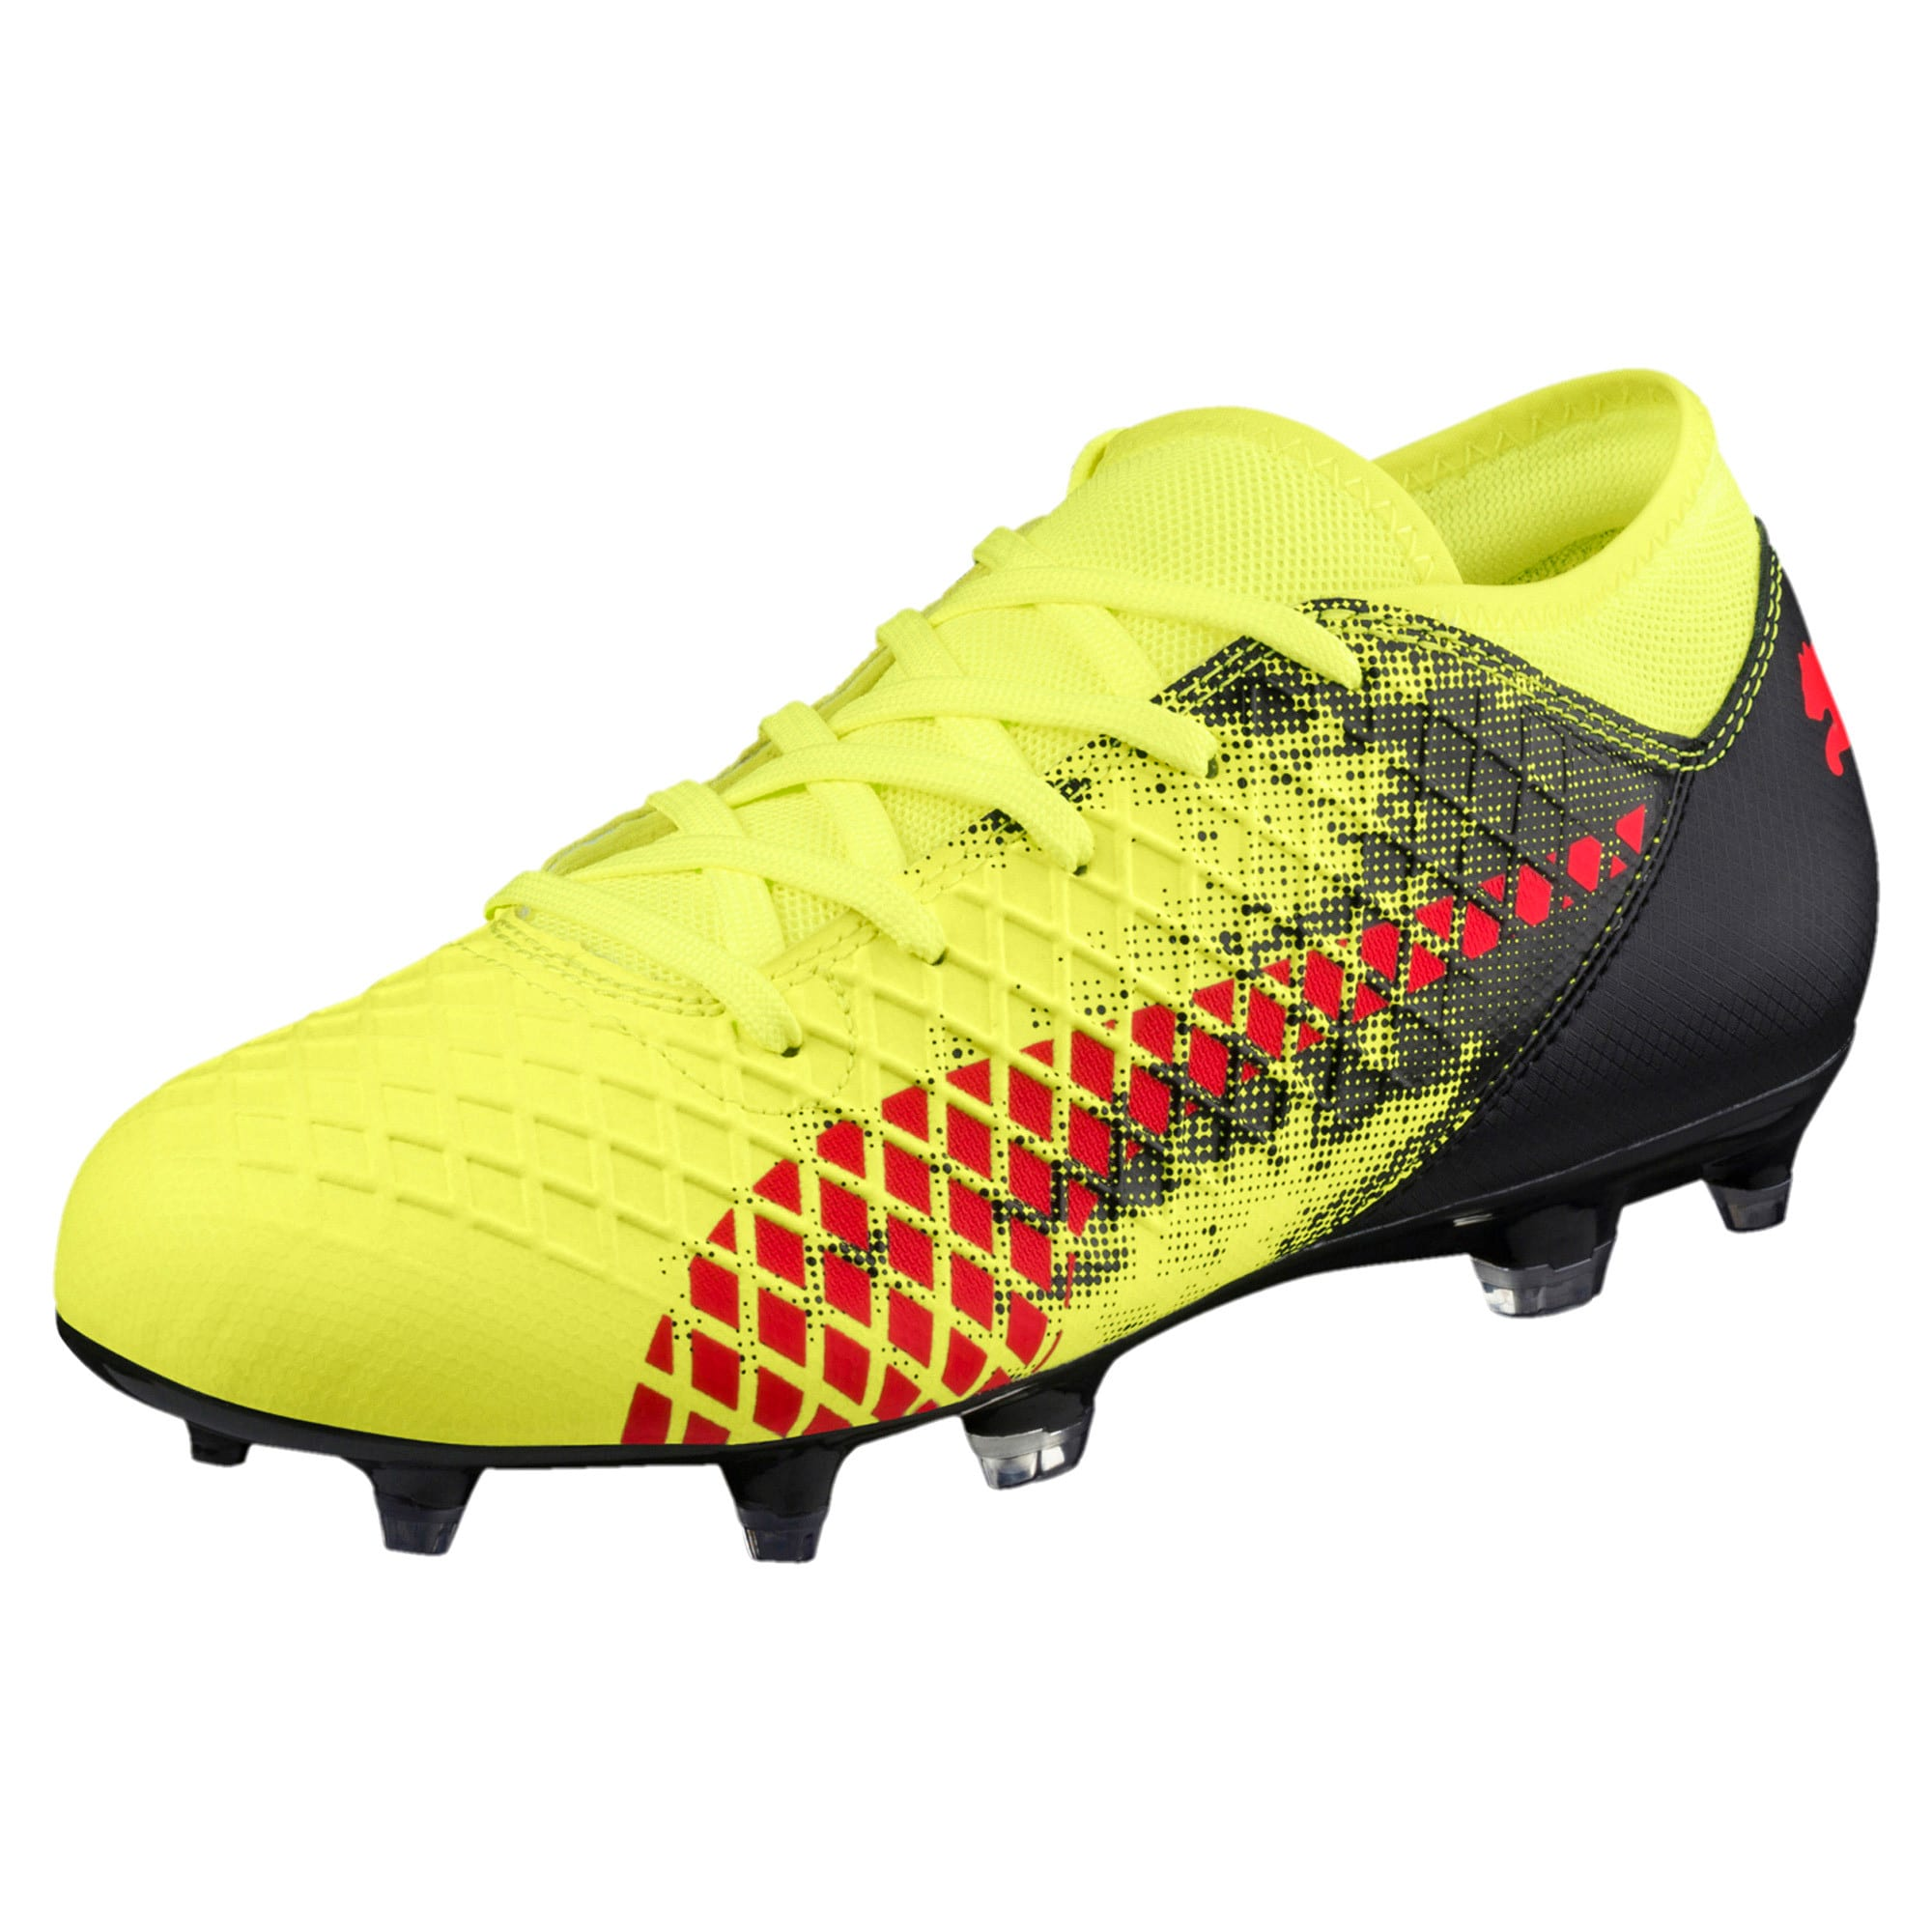 Thumbnail 1 of FUTURE 18.4 FG/AG Soccer Cleats JR, Yellow-Red-Black, medium